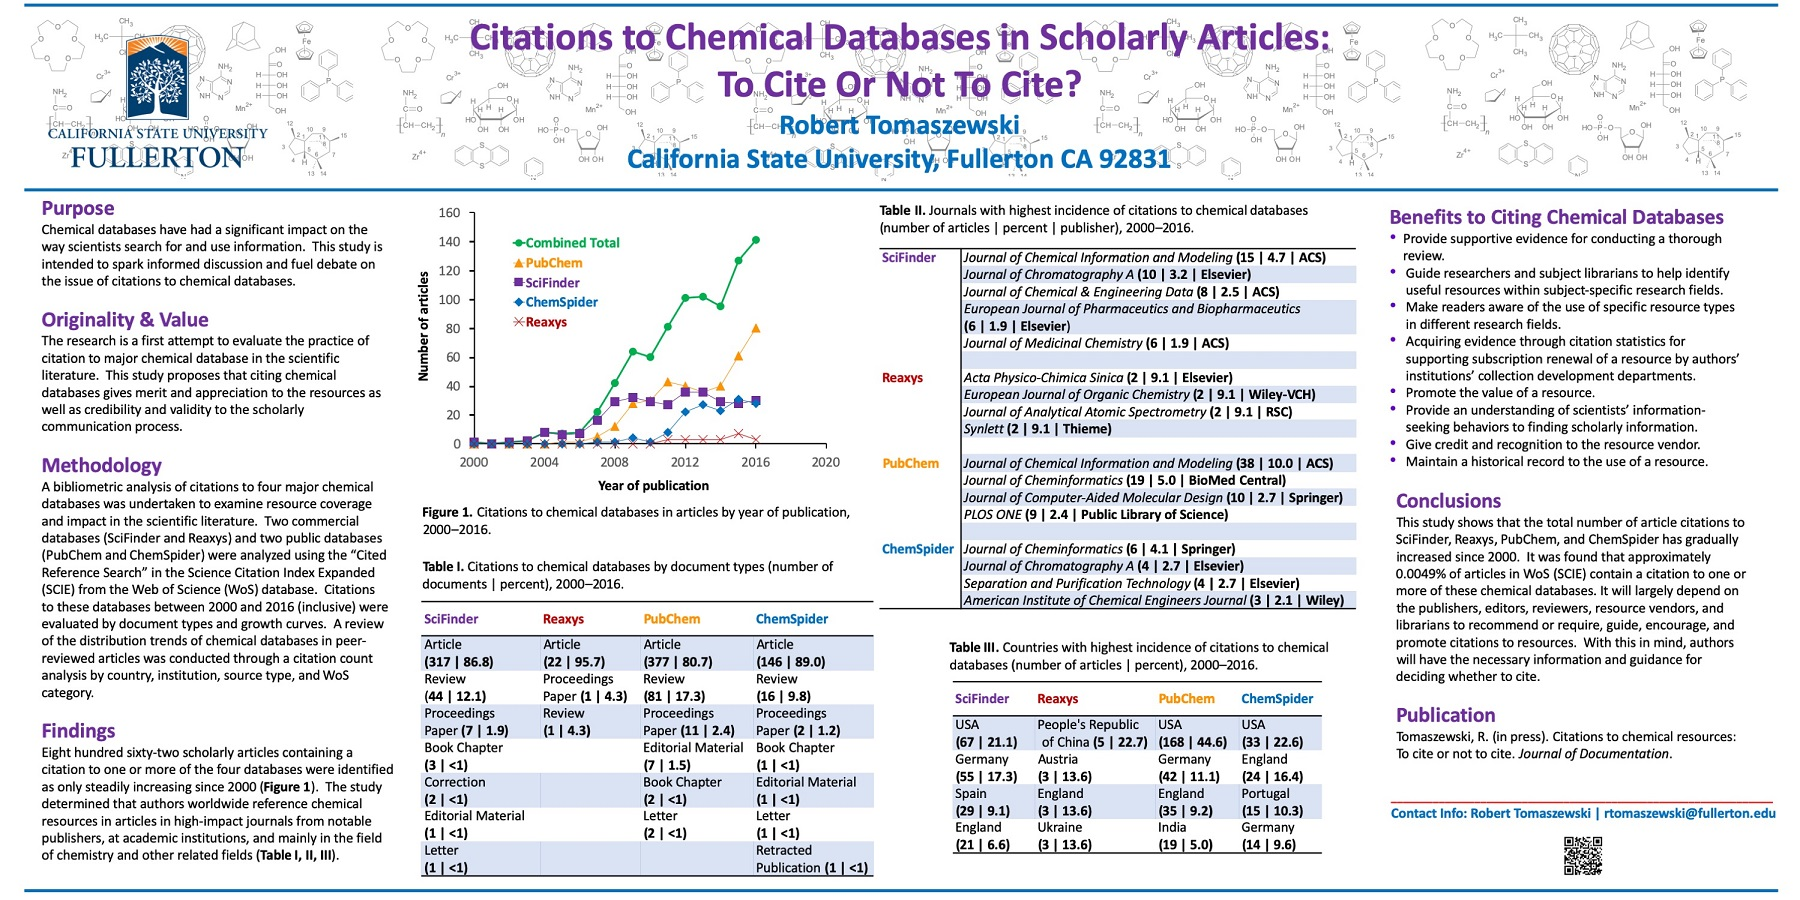 Citations to Chemical Databases in Scholarly Articles: To Cite Or Not To Cite by Robert Tomaszewski, CSU Fullerton